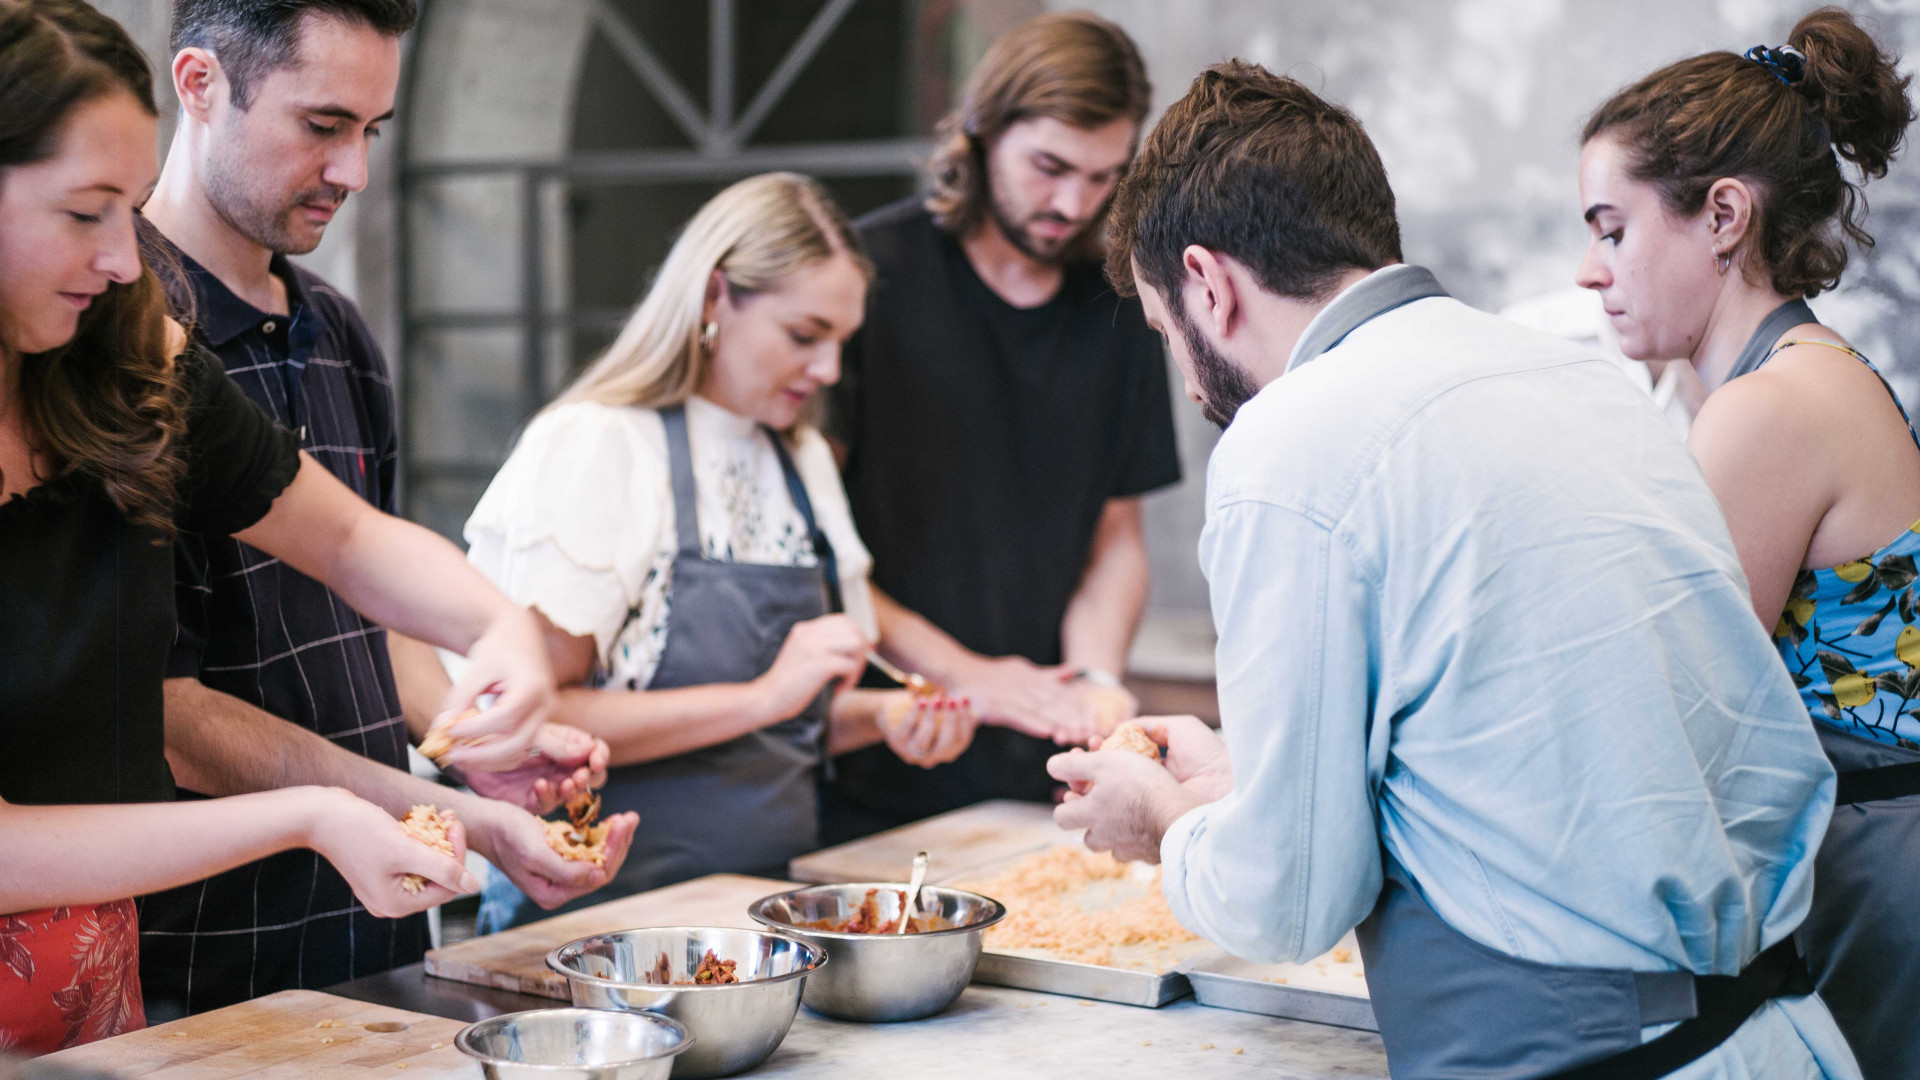 Merlin Labron-Johnson teaching some kitchen skills during The Thinking Traveller's week-long 'culinary experience' at Rocca delle Tre Contrade